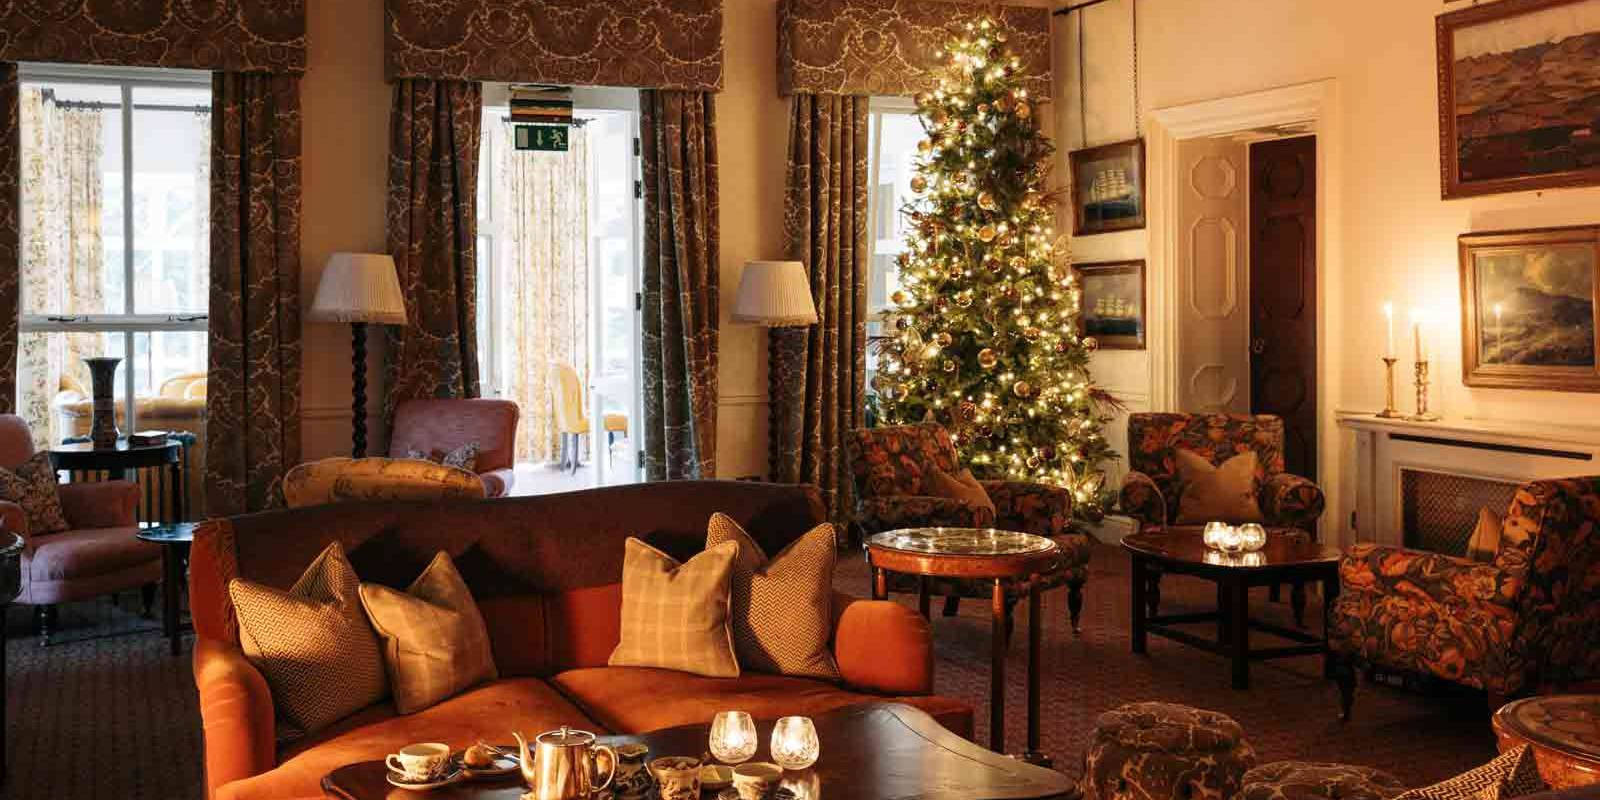 Ballynahinch Hunts Room at Christmas